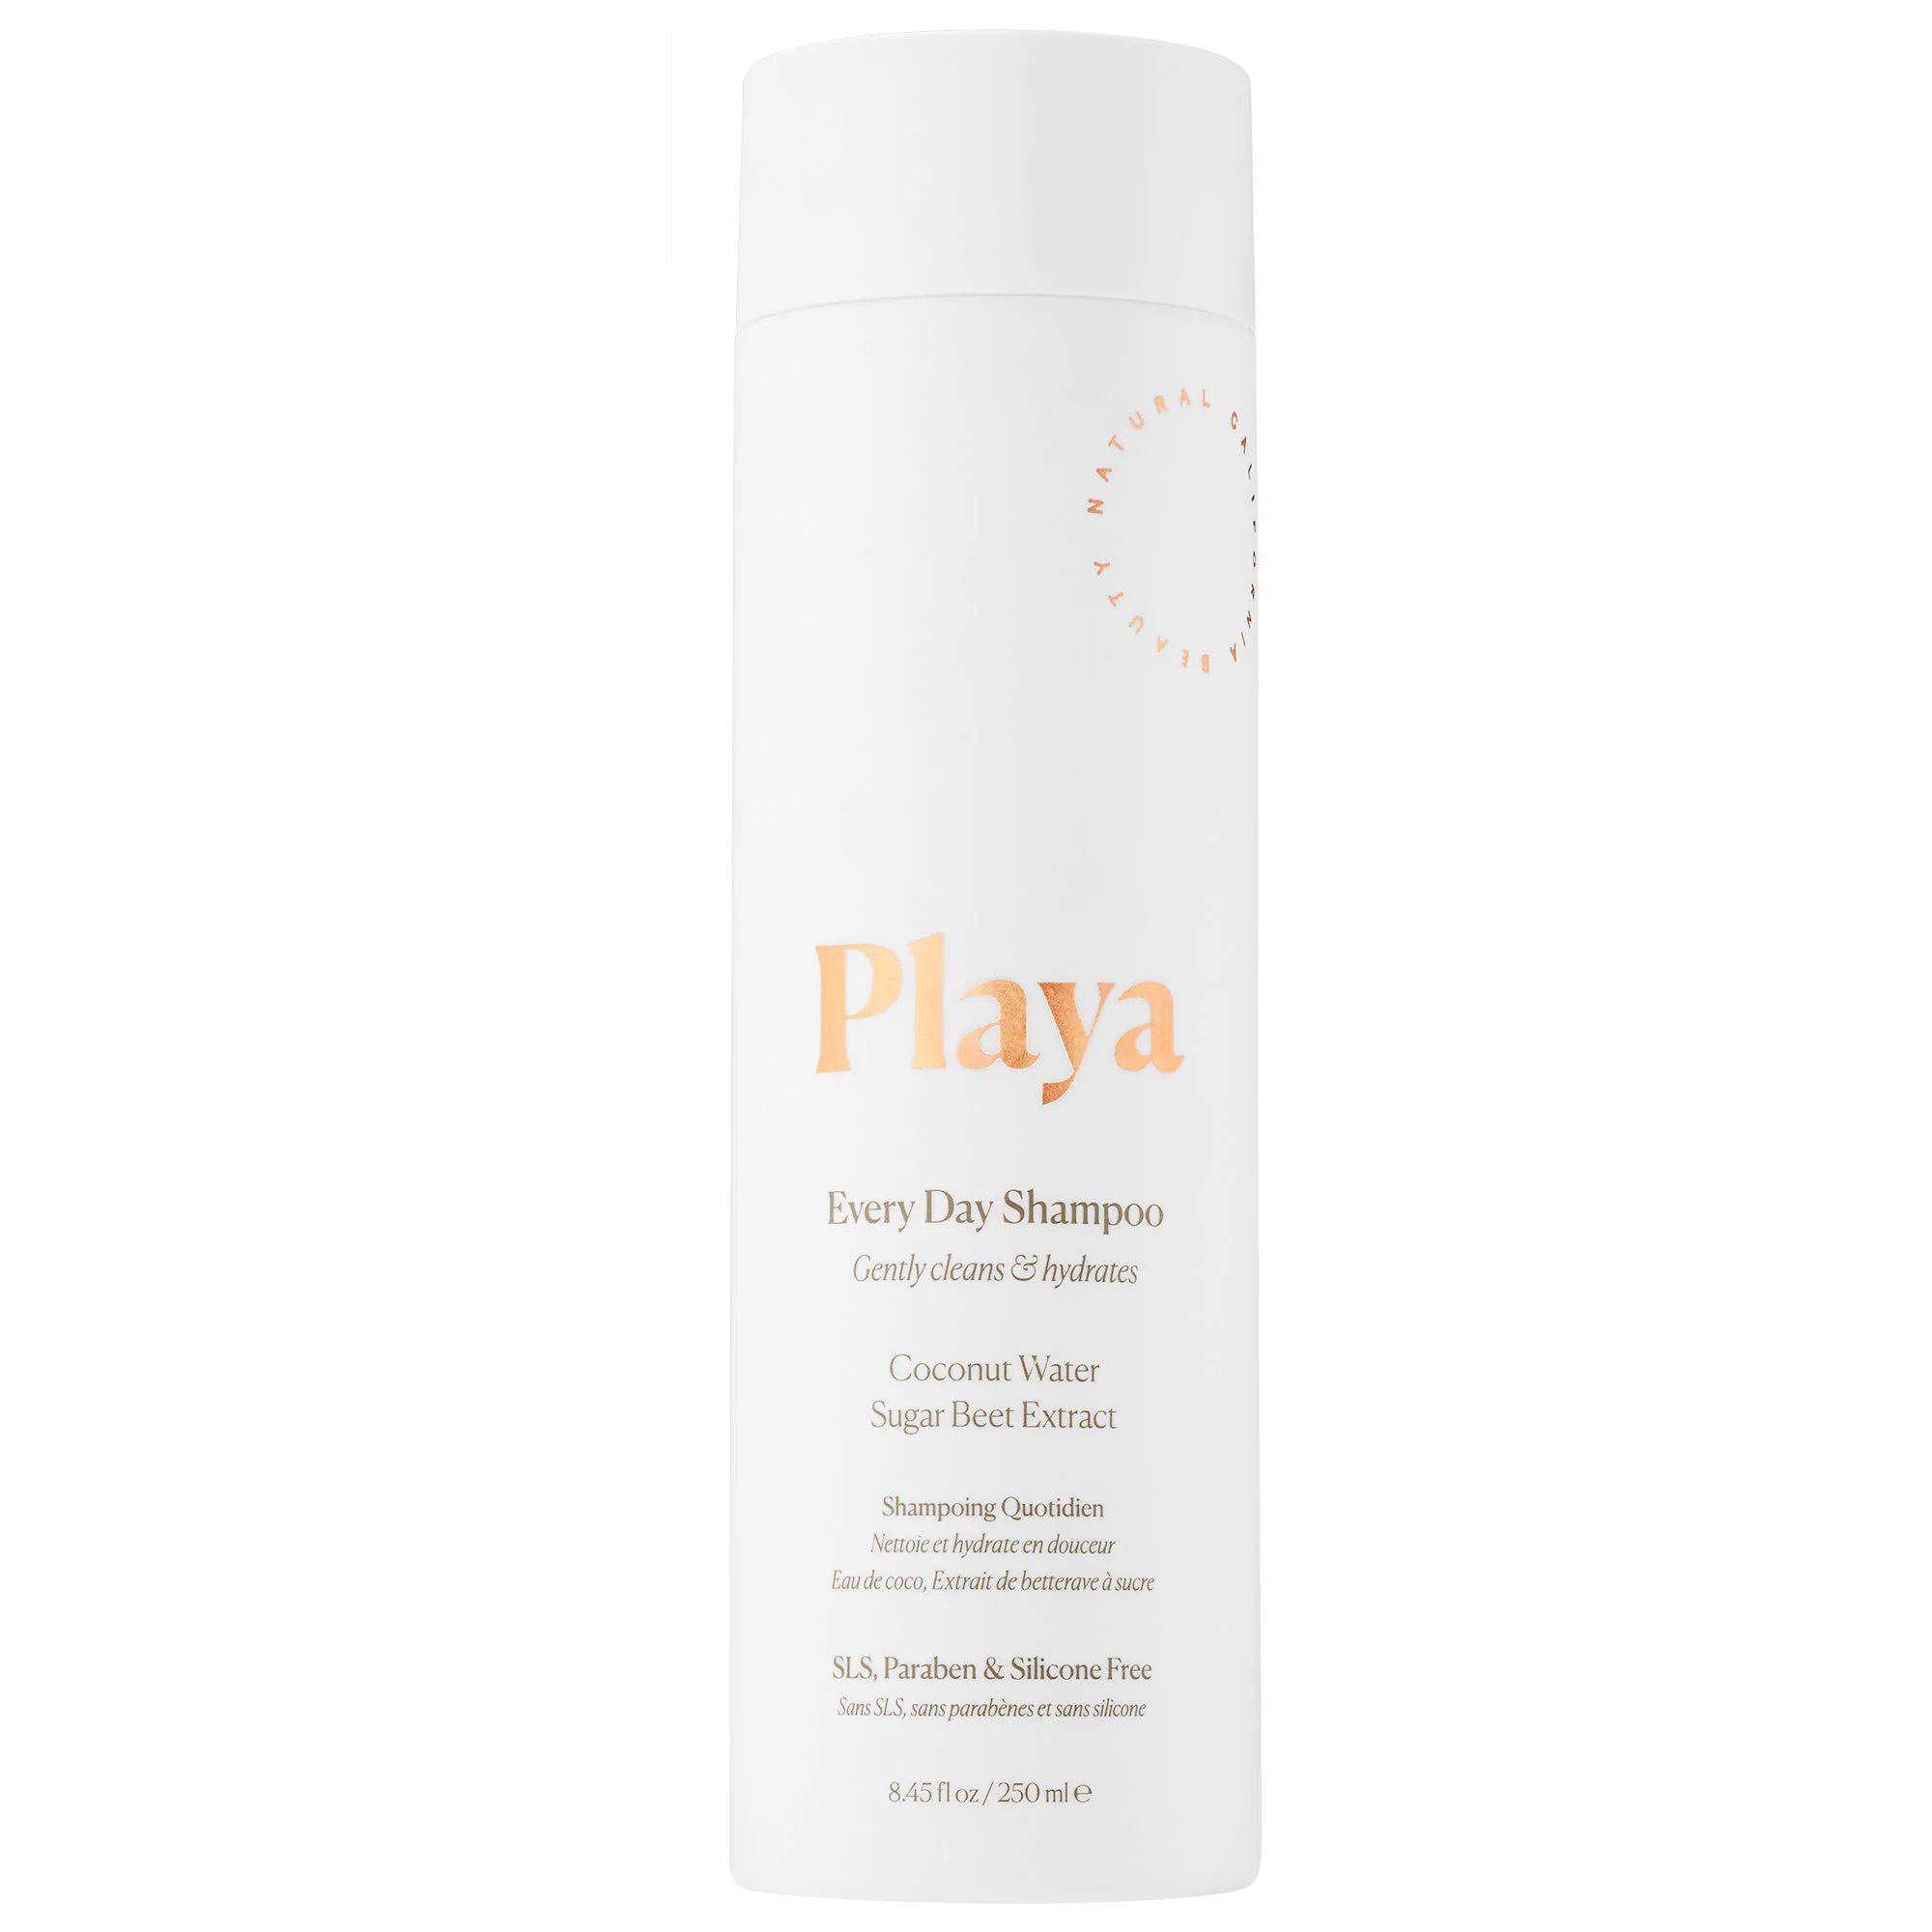 For Dry Hair: Playa Every Day Shampoo